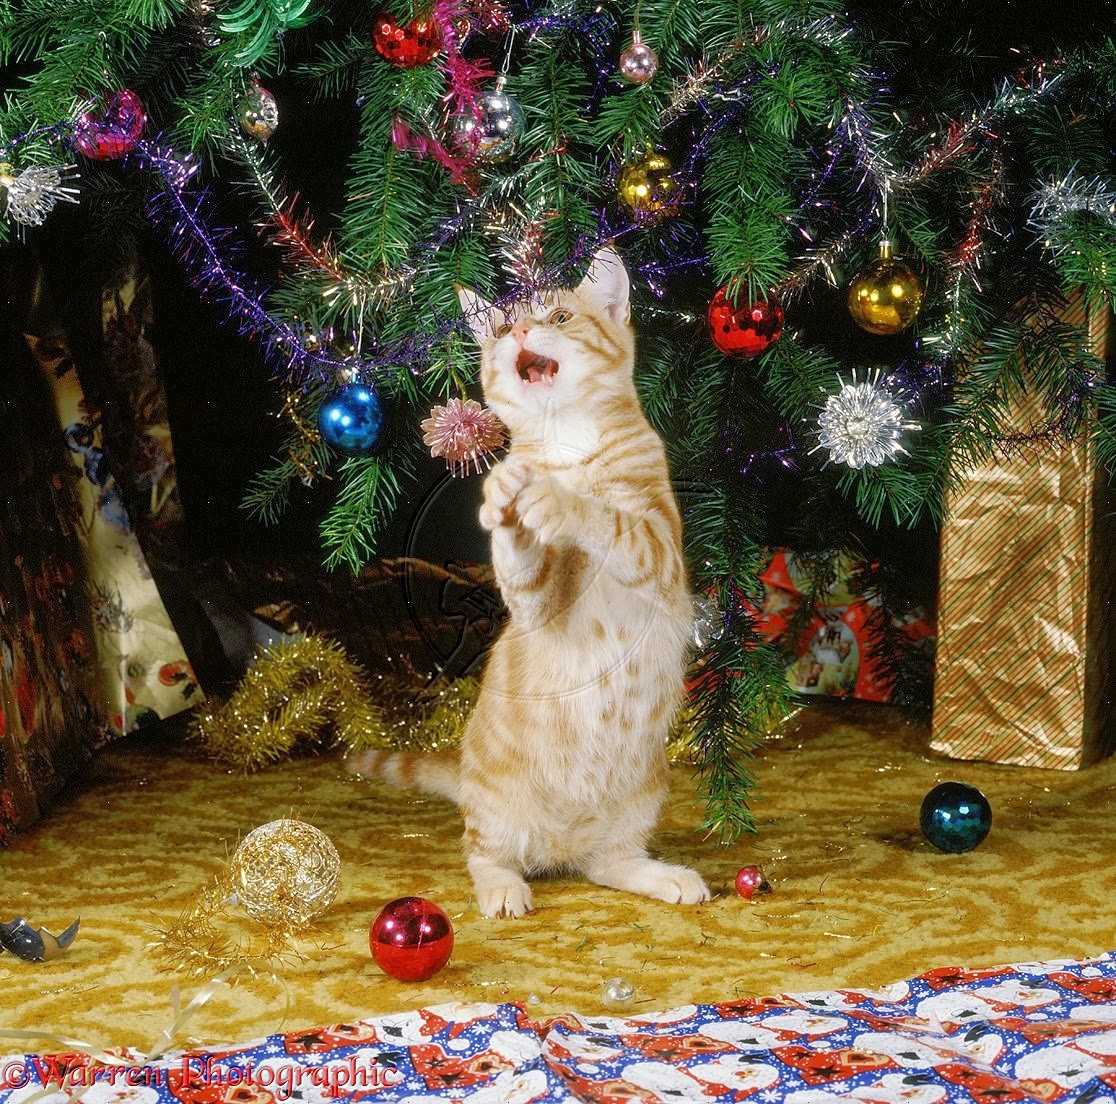 funny playing cat in front of christmas tree decoration sets